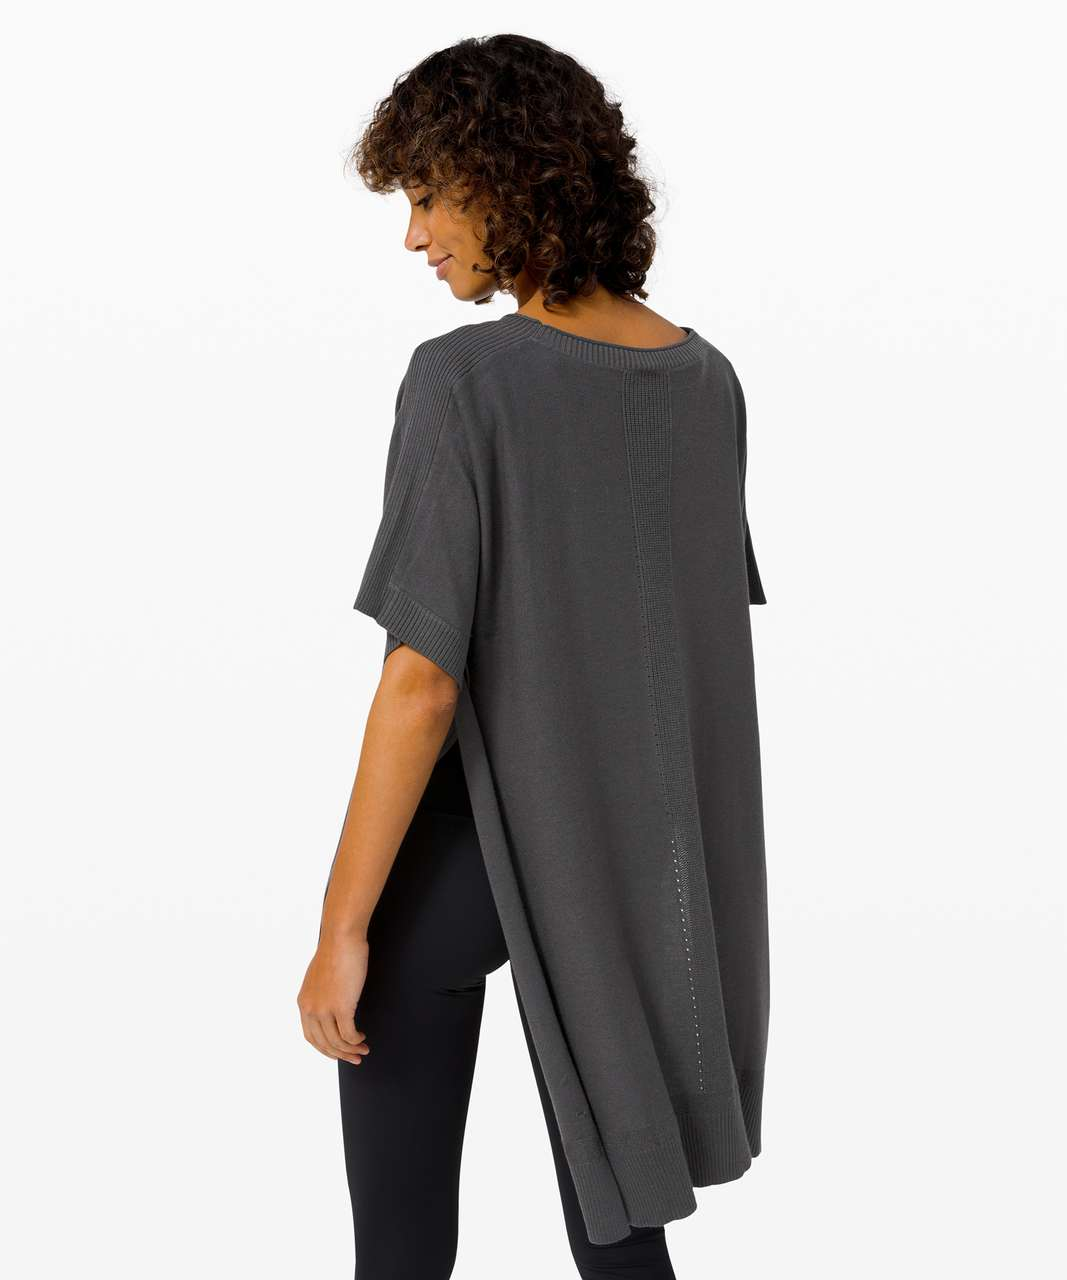 Lululemon Be At Ease Poncho - Graphite Grey